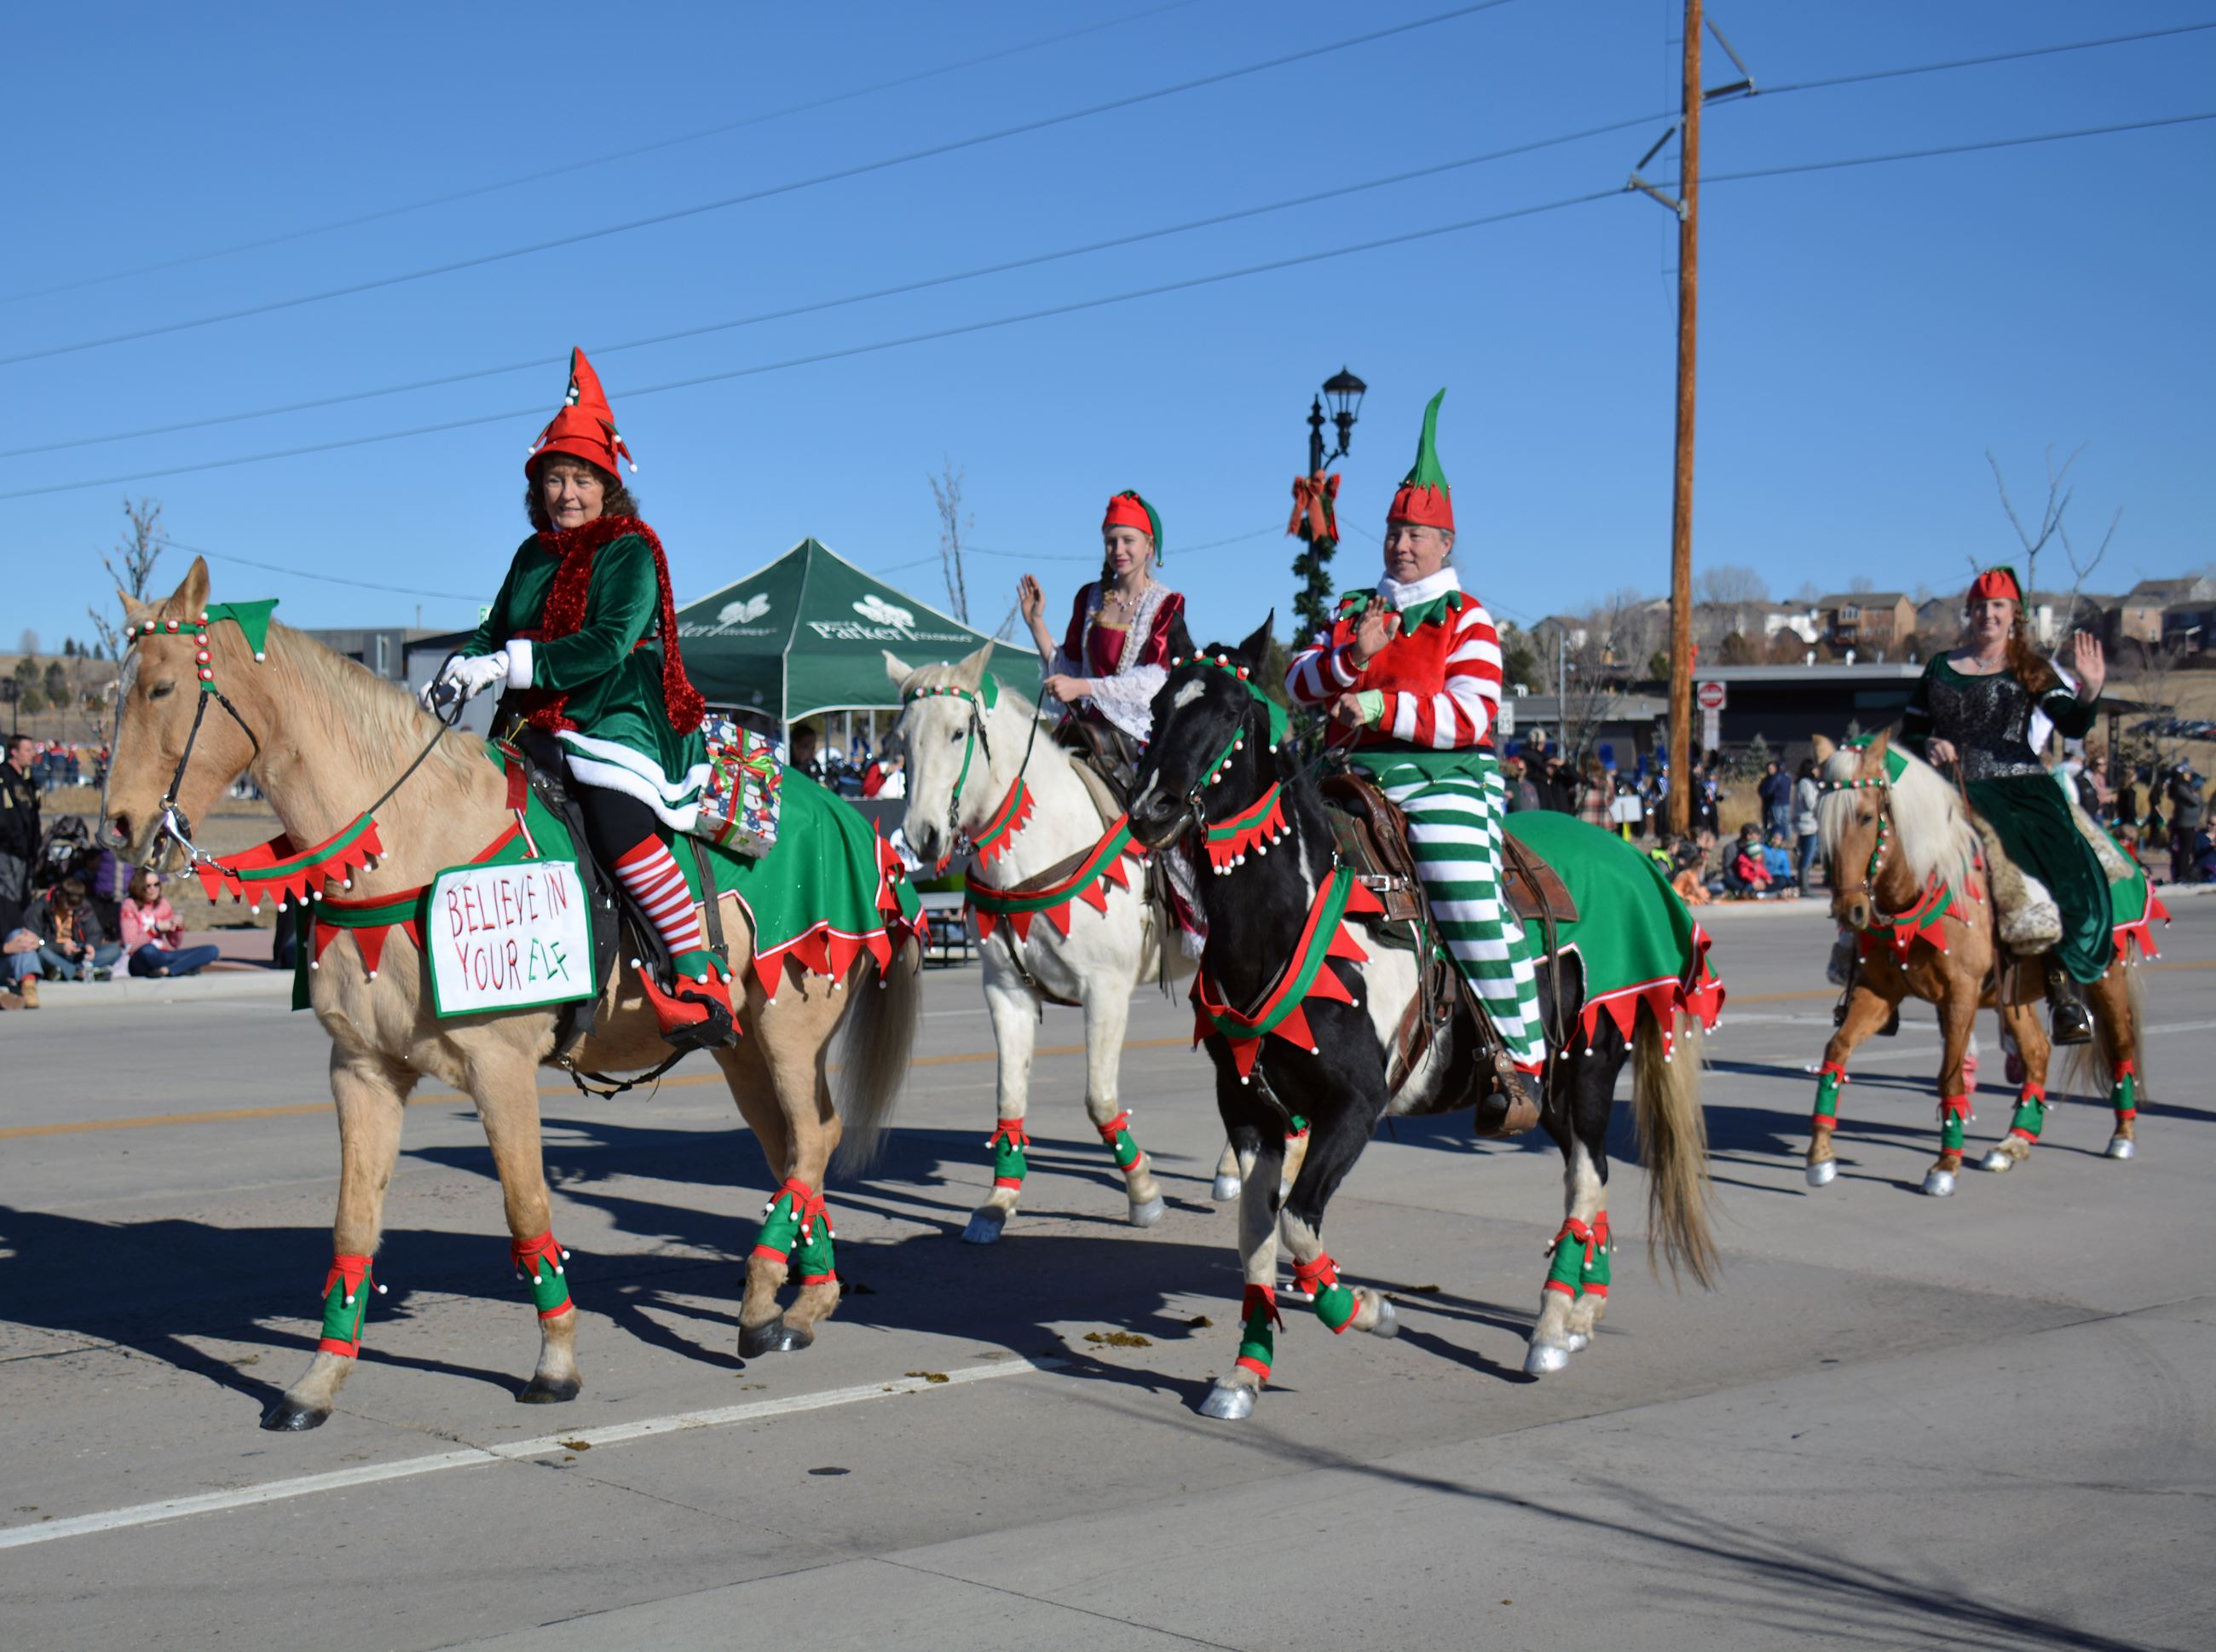 Christmas Parades Near Me 2019.Christmas Carriage Parade Presented By Xfinity Town Of